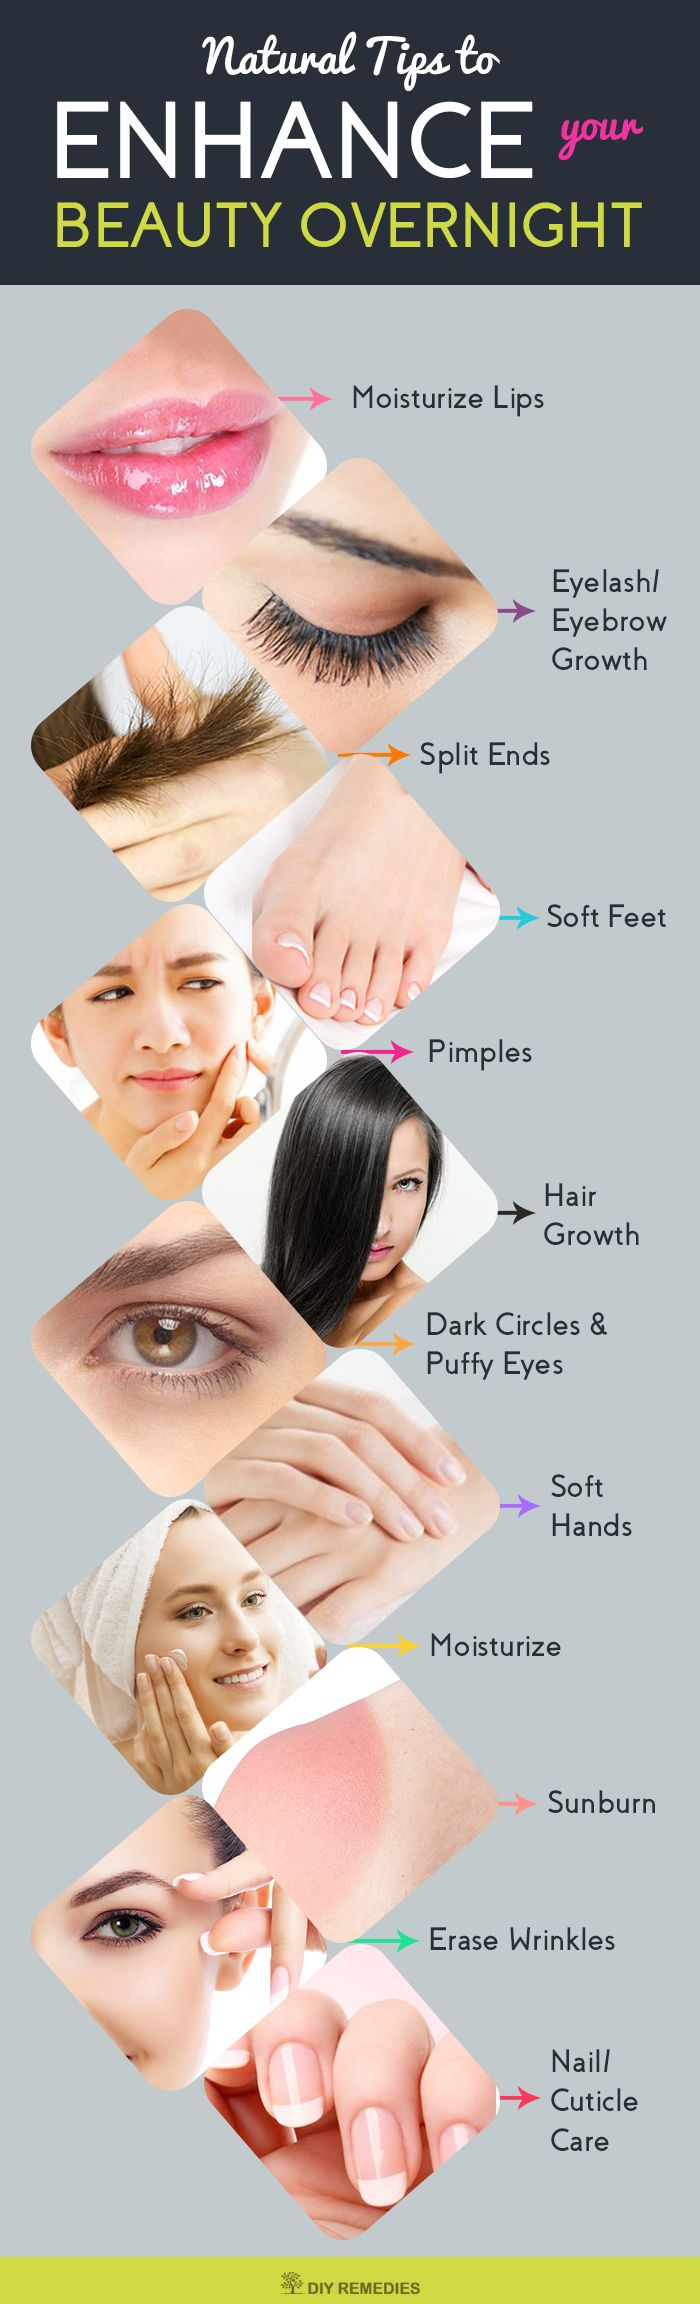 Overnight Beauty Tips    Are you ready to treat your skin and hair with natural remedies and enjoy both rest and beauty treatment at the same time? Let's have a look at these tips and tricks which you have to follow them overnight to fix your beauty problems.  #DIYRemedies #BeautyTips